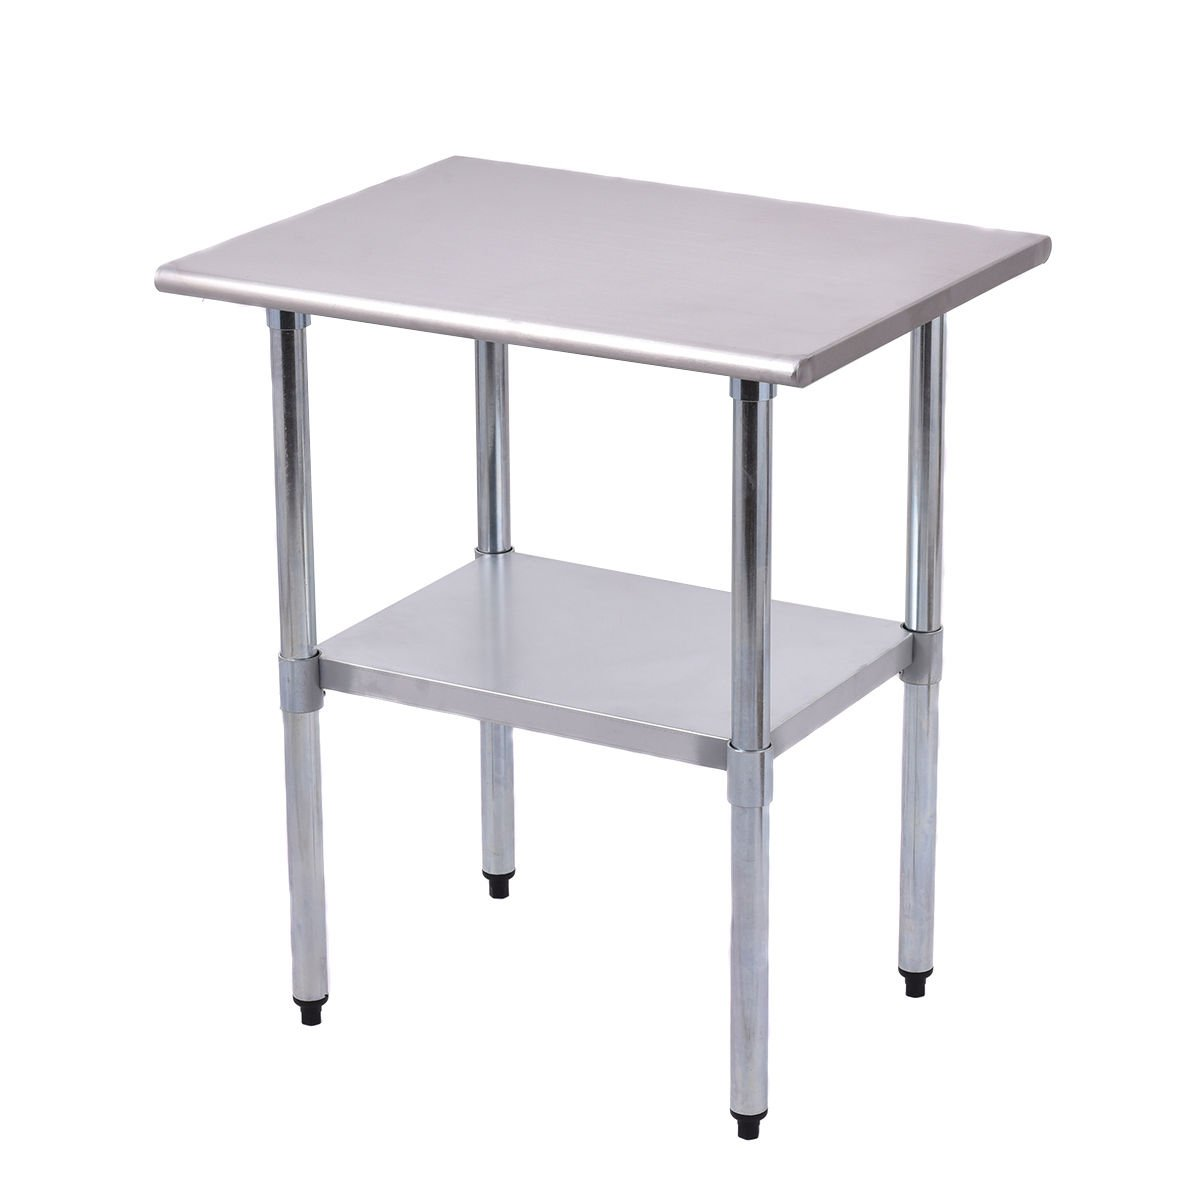 Goplus Stainless Steel Work Table Prep Work Table for Commercial Kitchen Restaurant (24'' x 30'')